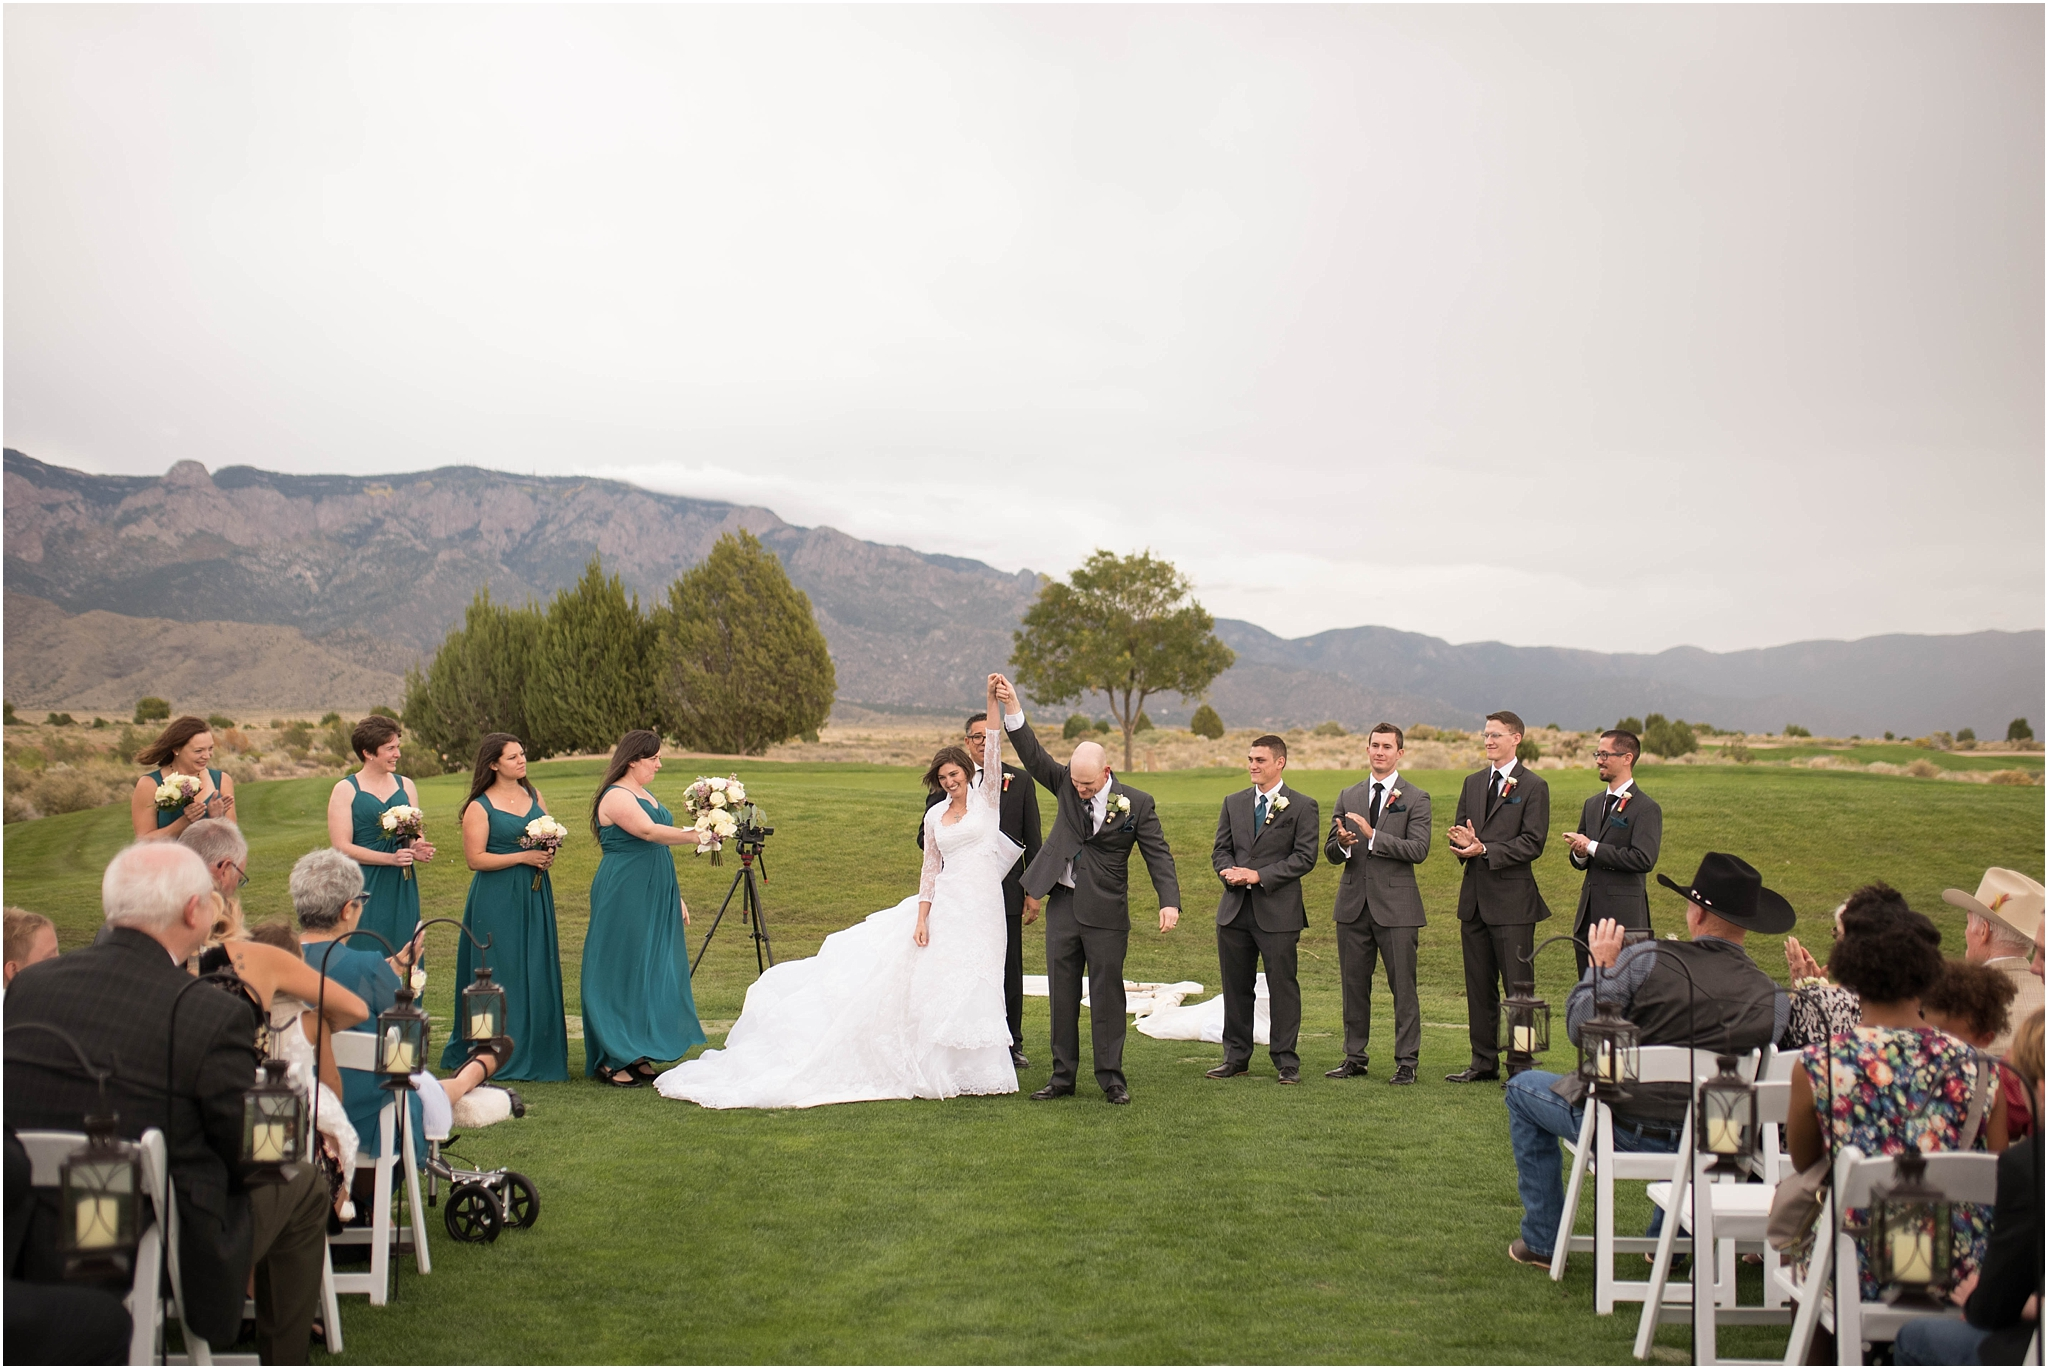 kayla kitts photography - new mexico wedding photographer - albuquerque botanic gardens - hotel albuquerque-casa de suenos_0245.jpg